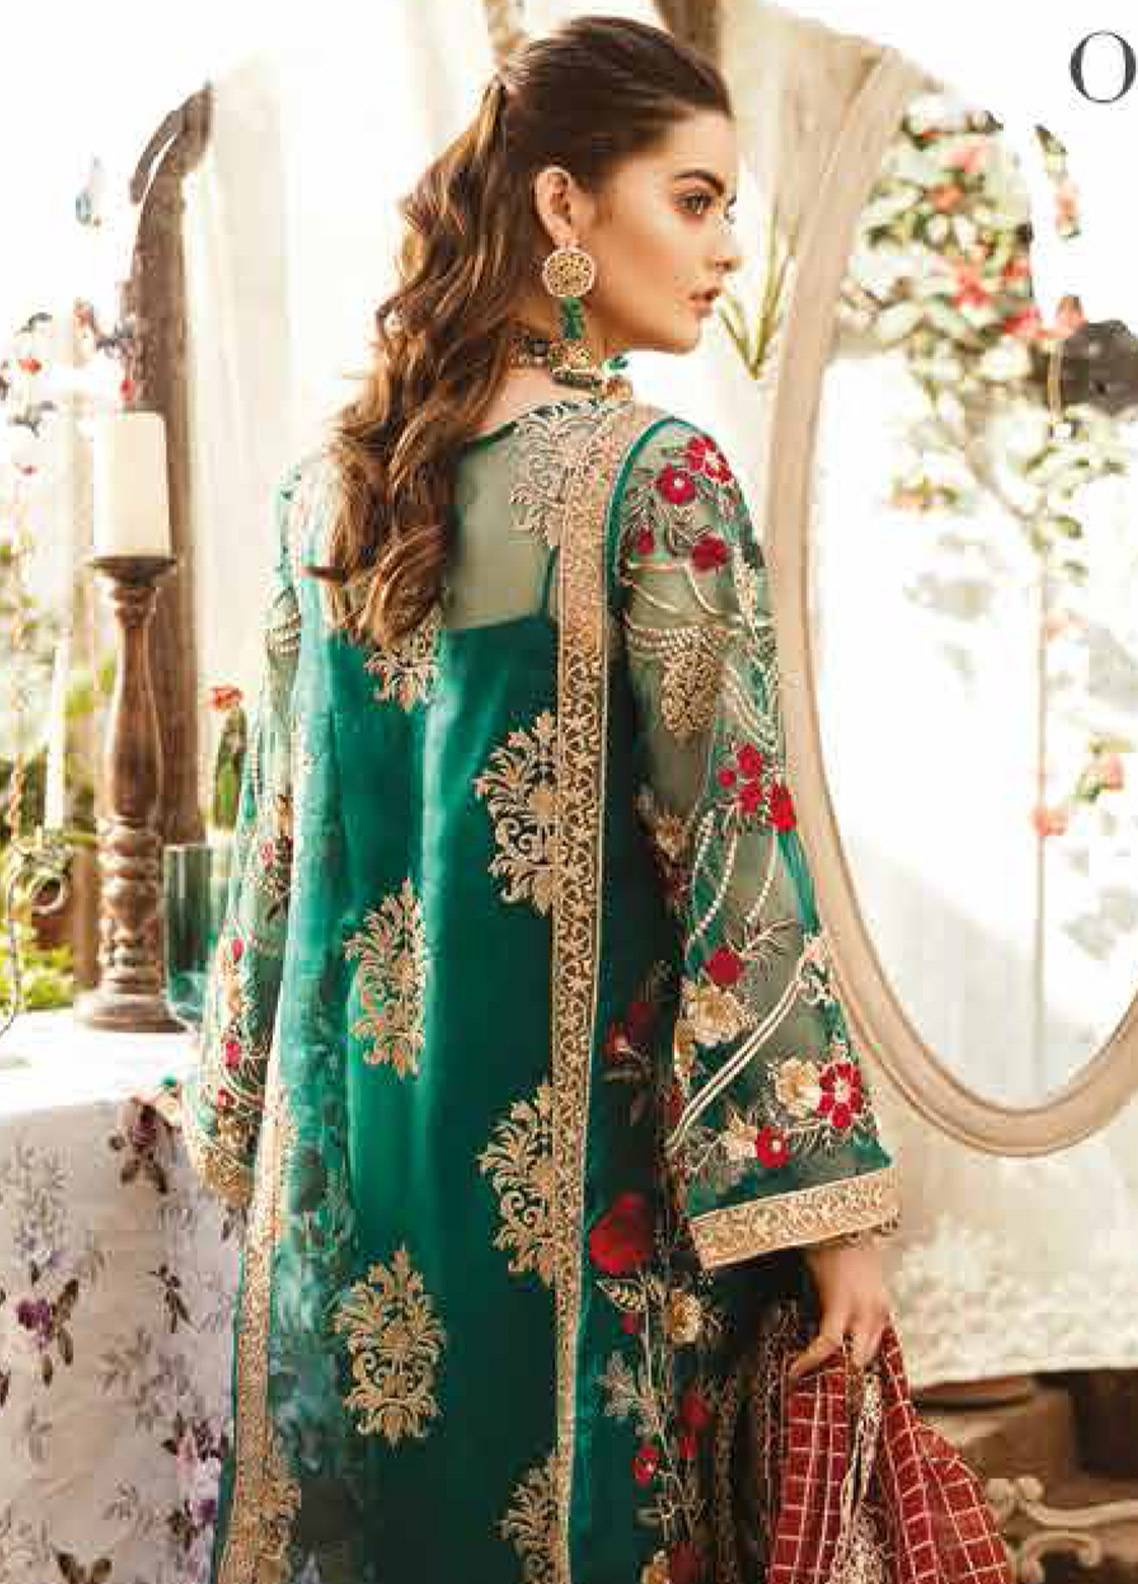 f818610c1 Serene Premium Embroidered Chiffon and Lawn Suits 2019 Collection ...